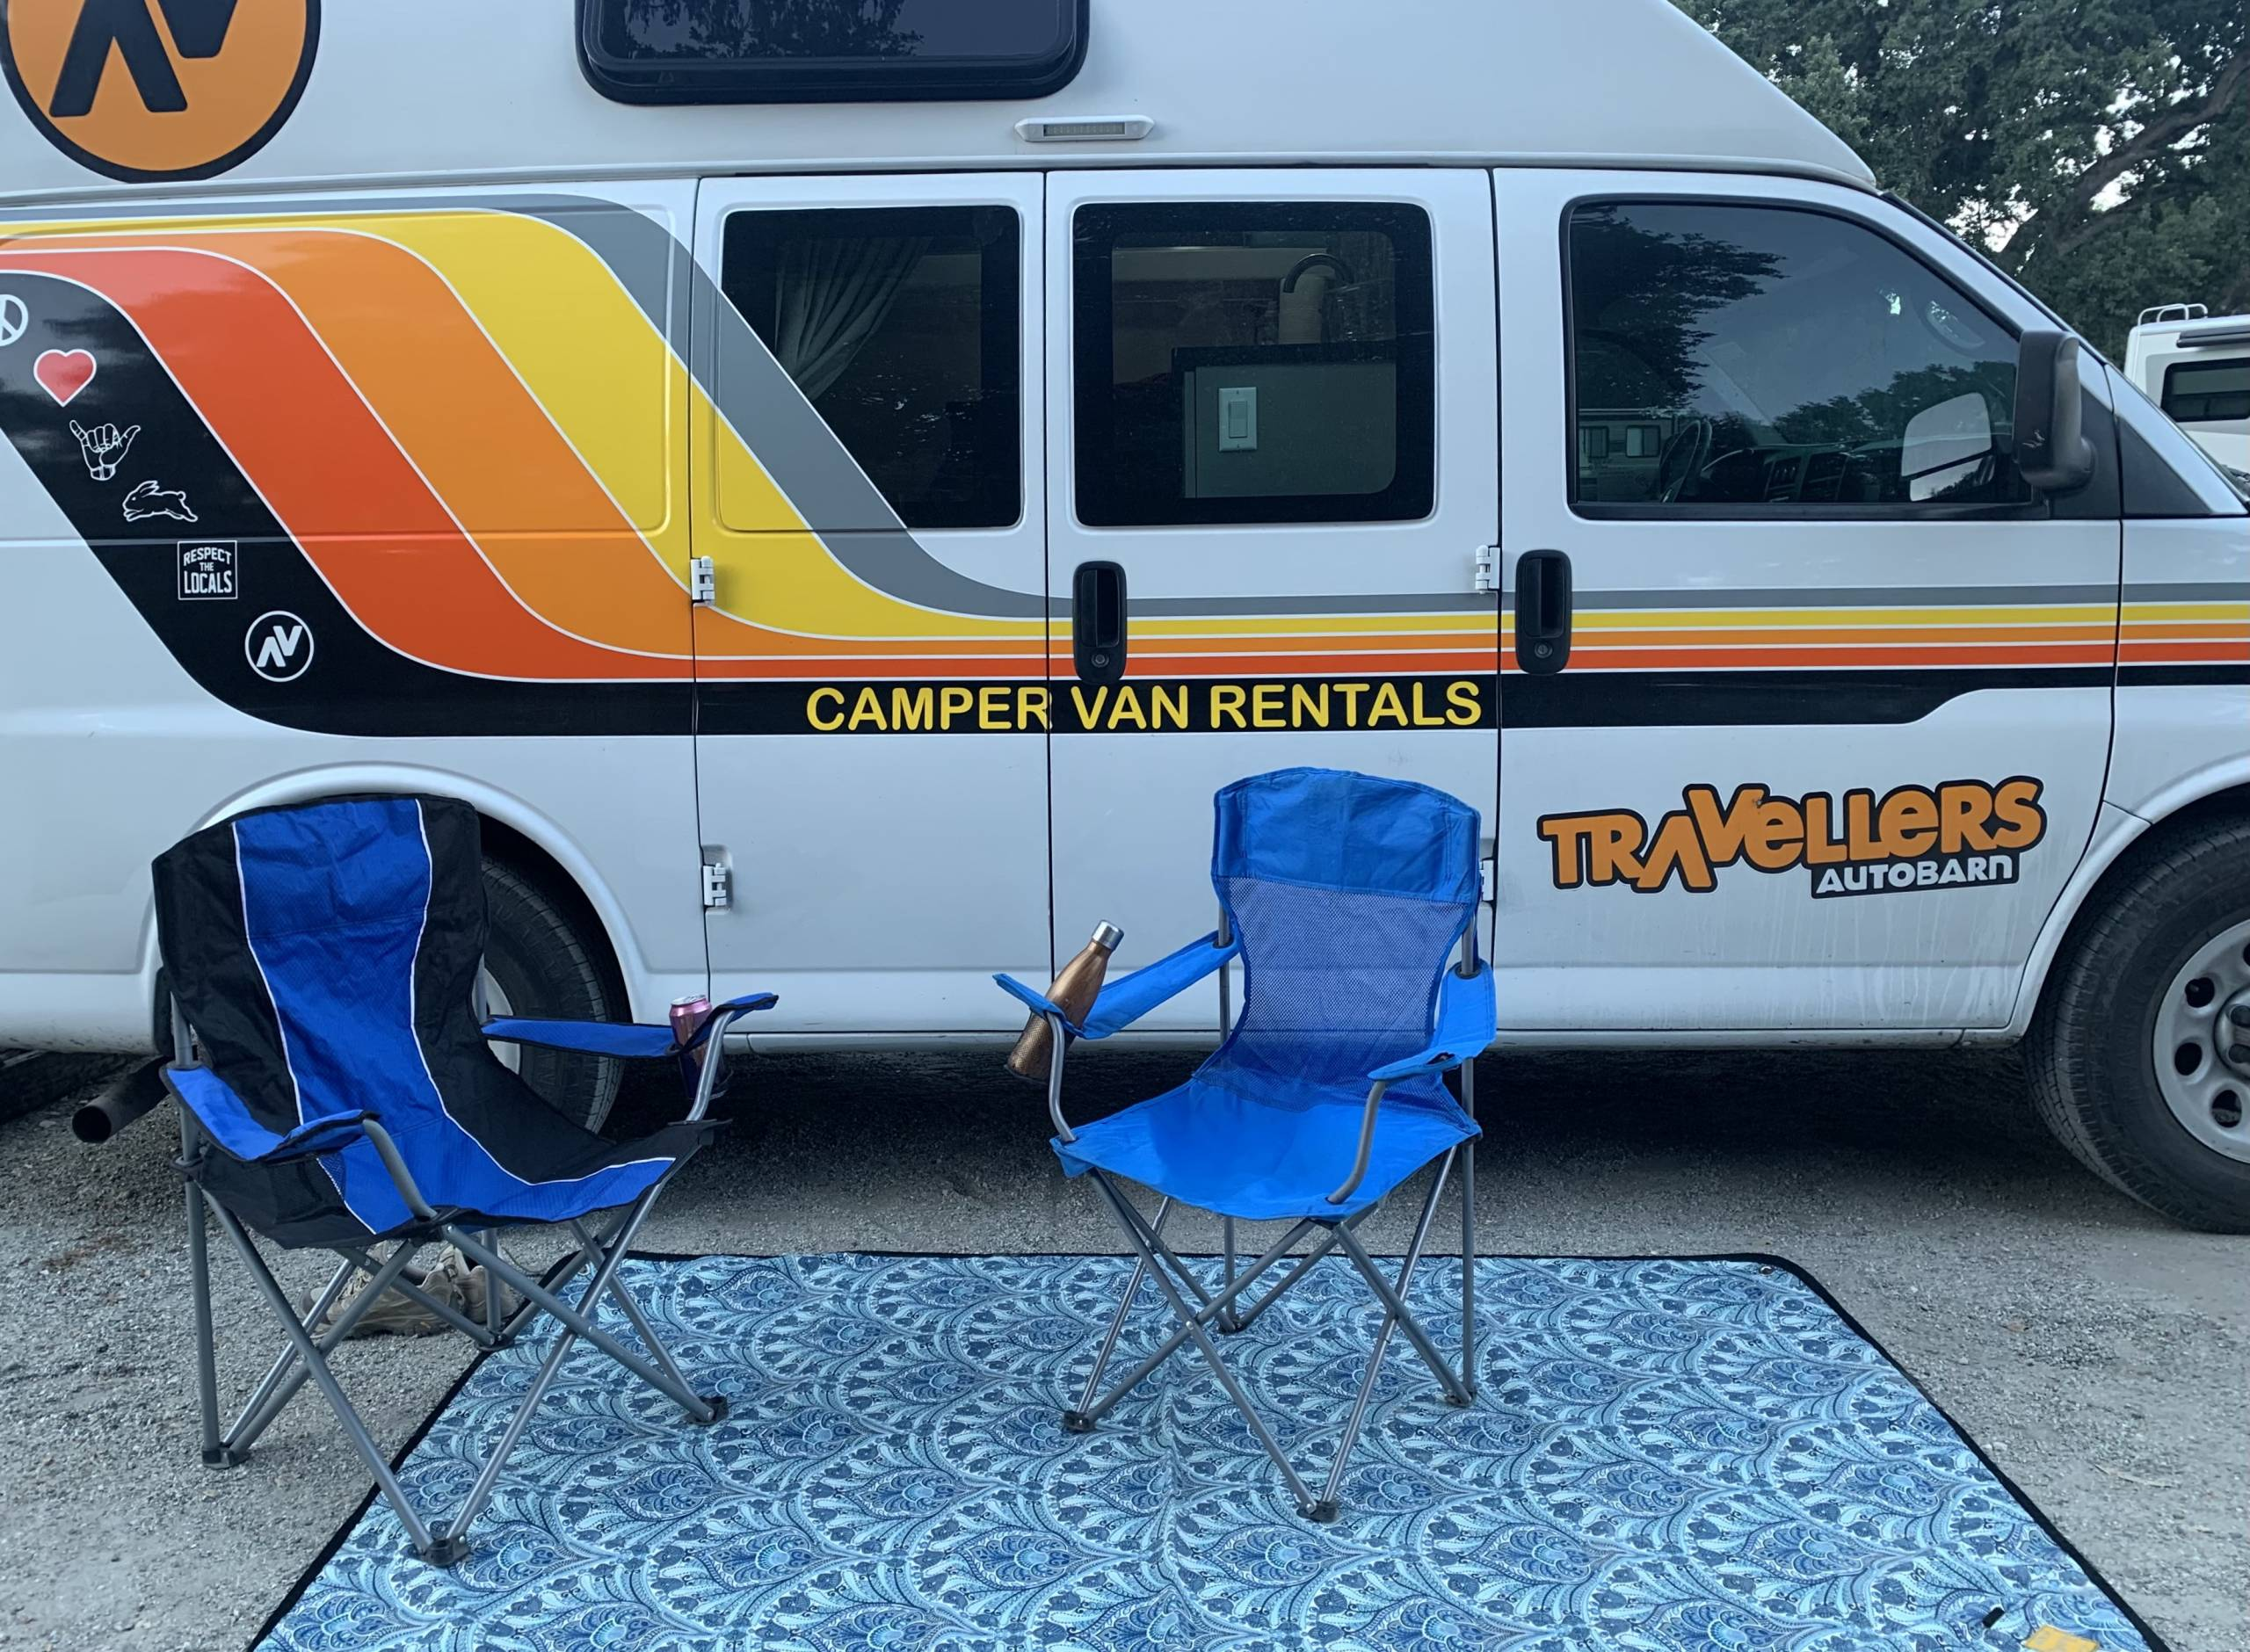 Travellers Autobarn campervan at camp with camp chairs and a blanket outdoors